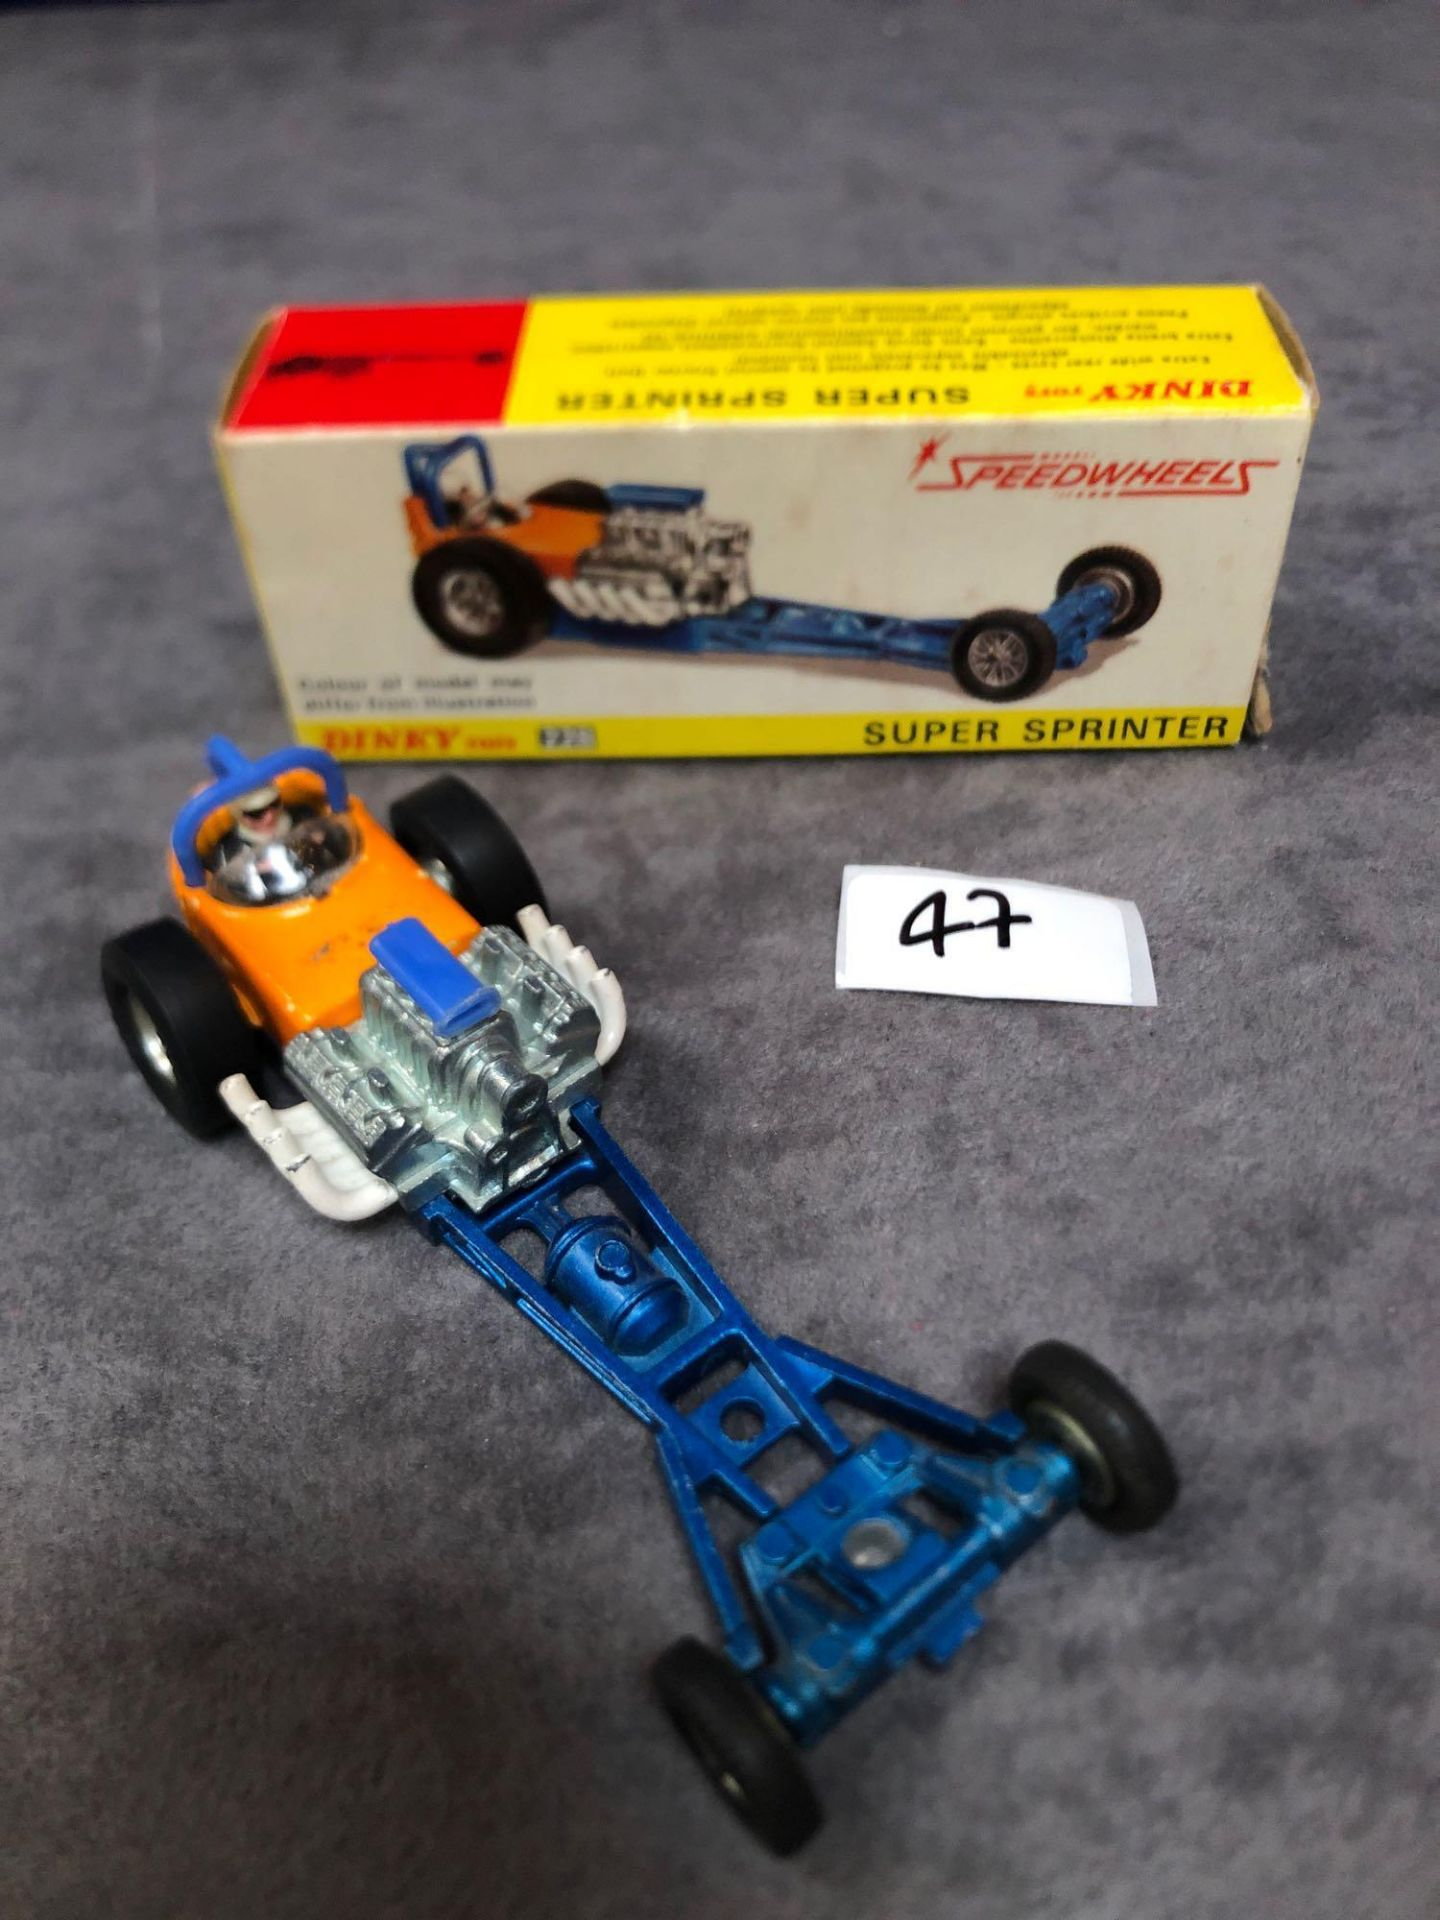 Dinky #228 Super Sprinter Blue And Orange - Exposed Engine And Speed Wheels. Very god model in a